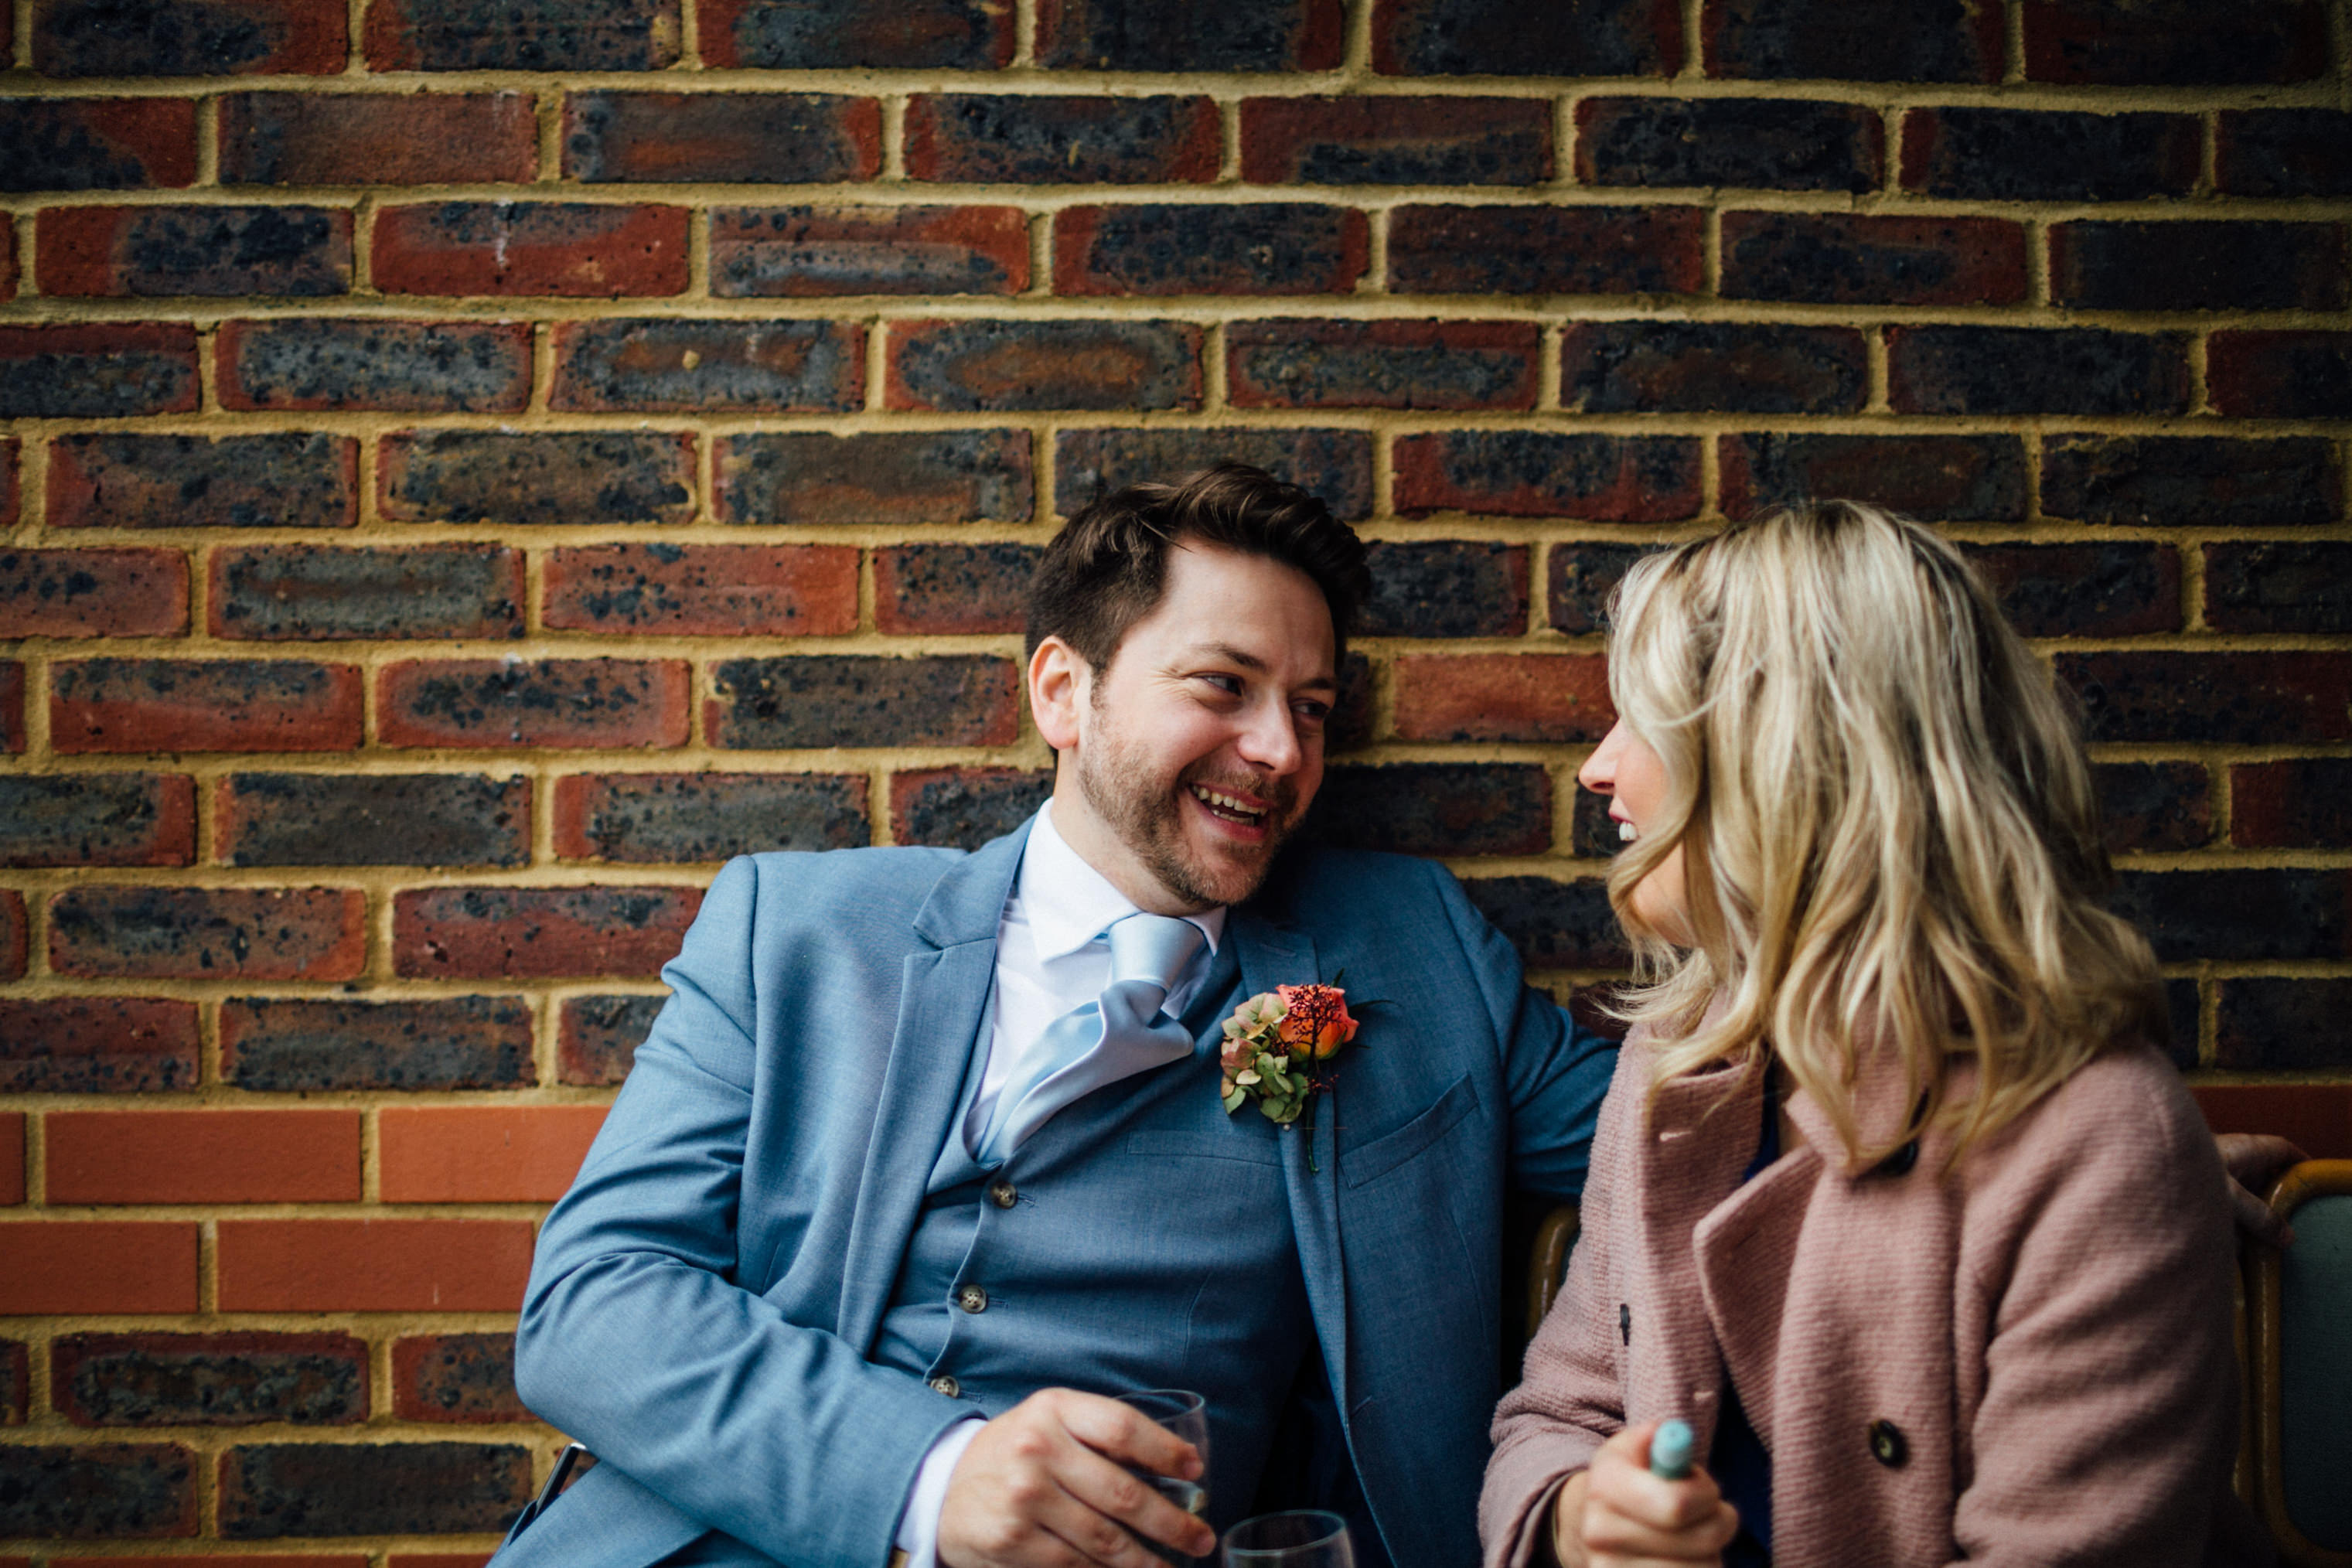 quirky autumn wedding in london wedding photographer